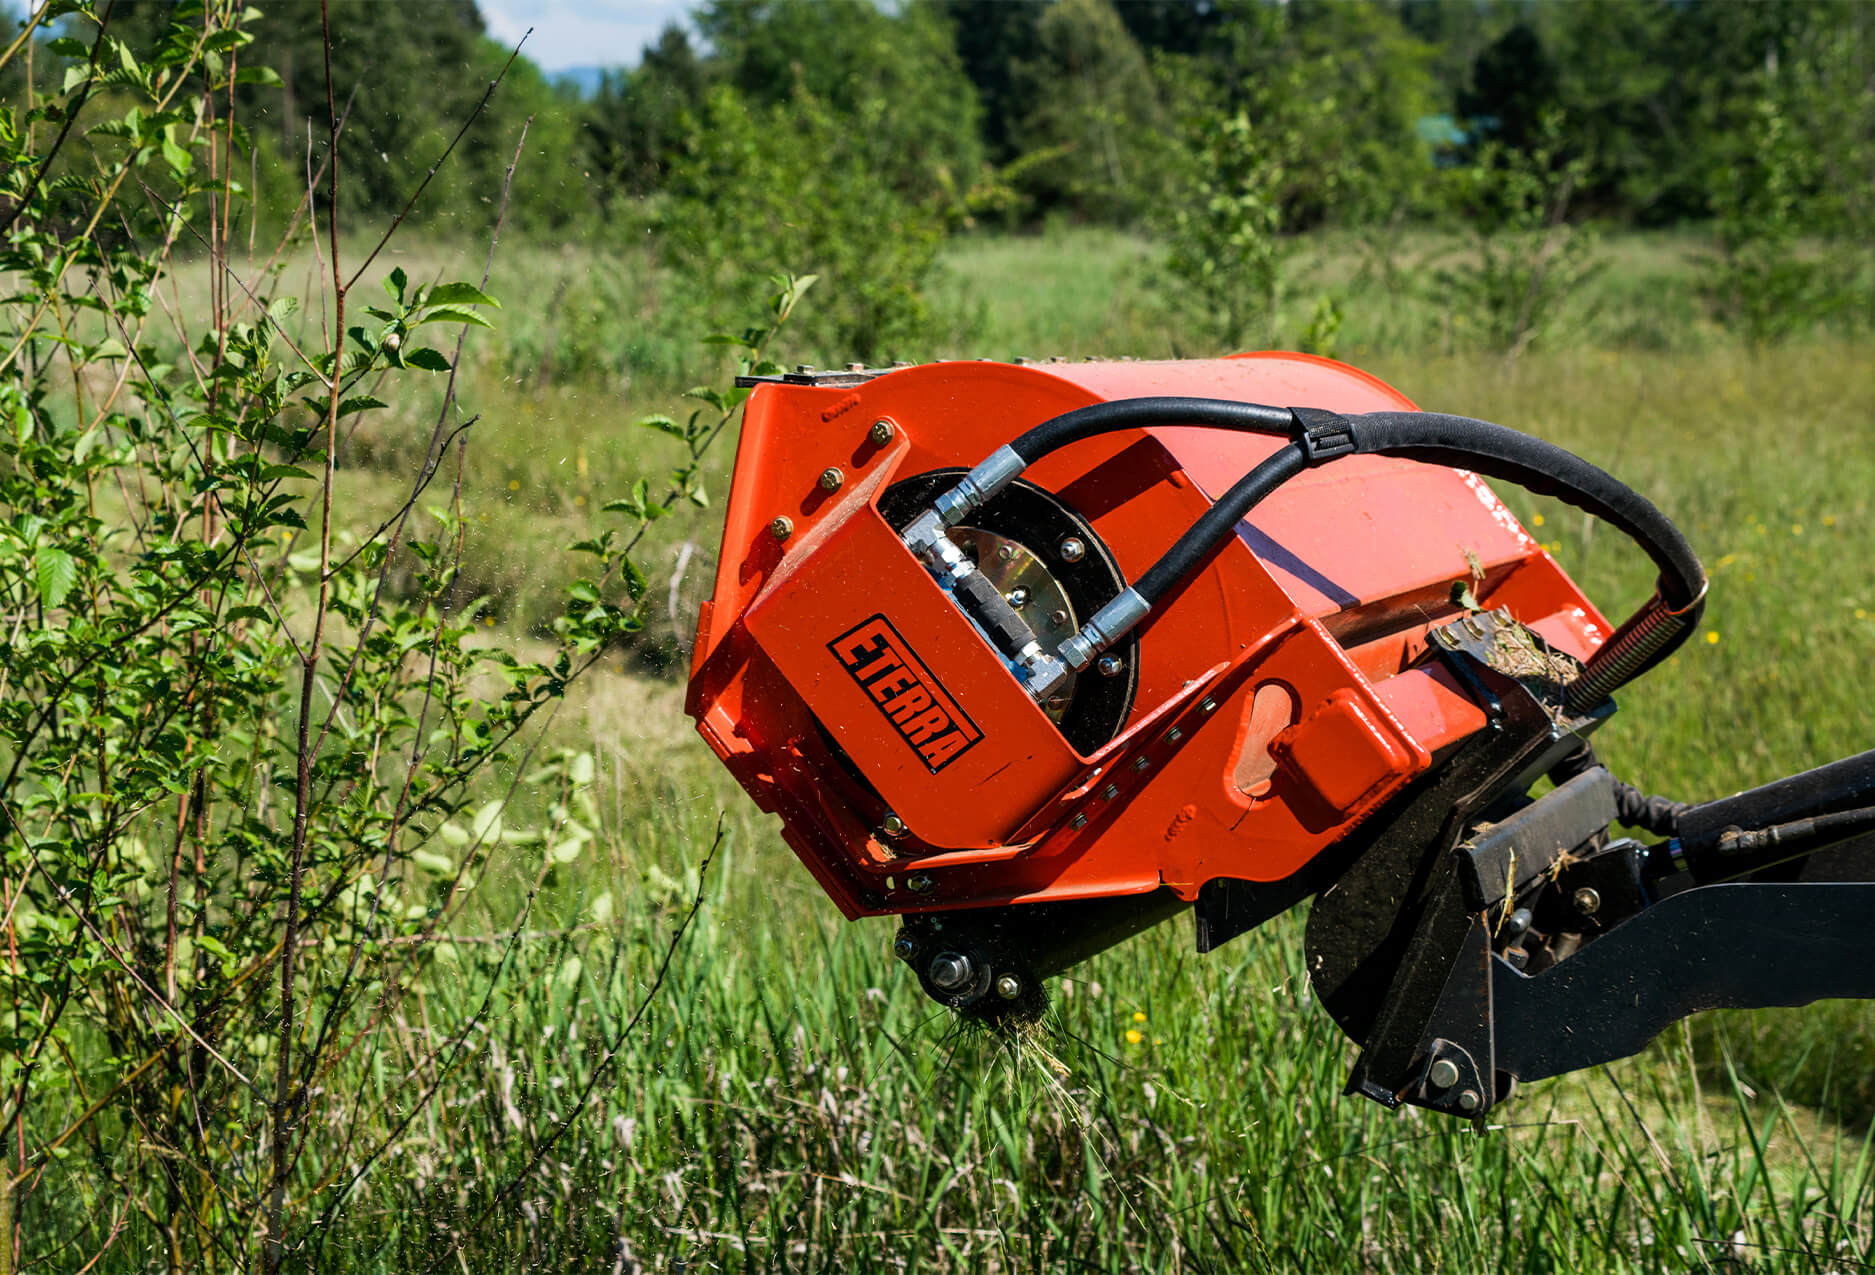 Eterra Sidewinder mini Skid Steer flail mower side angle